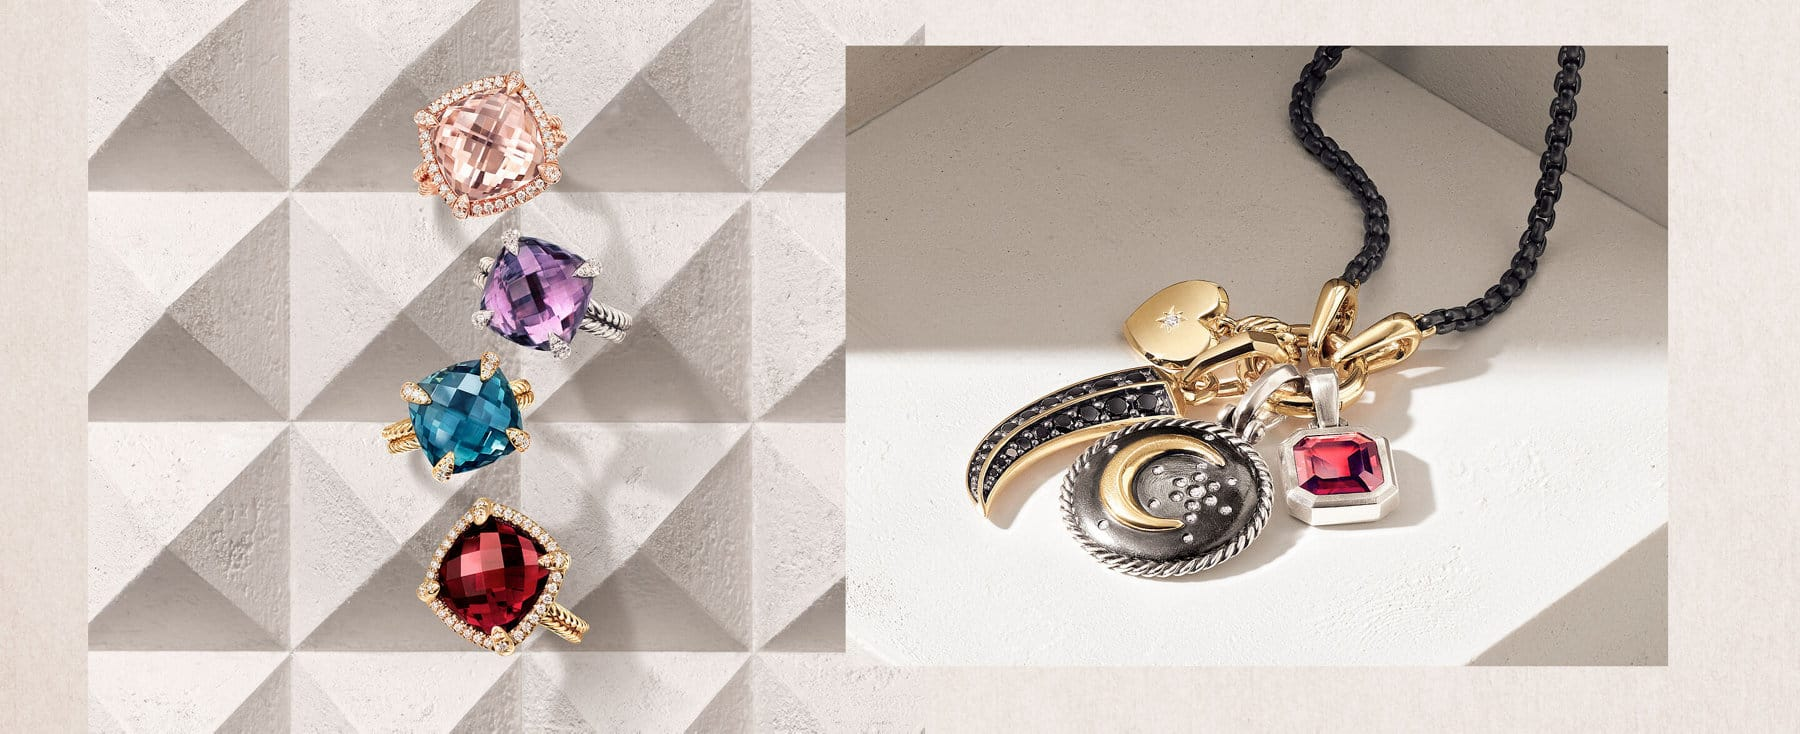 A photo collage juxtaposes two color photos. On the left is an overhead shot of a vertical stack of David Yurman Châtelaine rings placed atop a  beige-hued stone surface with pyramid-shaped protrusions. The women's jewelry is crafted from 18K yellow or rose gold or sterling silver with morganite, amethyst, blue topaz or garnet center stones surrounded by bezels or prongs set with pavé white diamonds. On the right is a shot of four amulets on a black-and-gold DY Bel Aire chain—all placed on a beige-hued stone surface with hard shadows. The amulets are crafted from 18K yellow gold with or without white or black diamonds, or sterling silver with or without diamonds or garnet. The amulets are shaped like a heart, a claw, a moon-and-star charm and an octagonal gemstone.